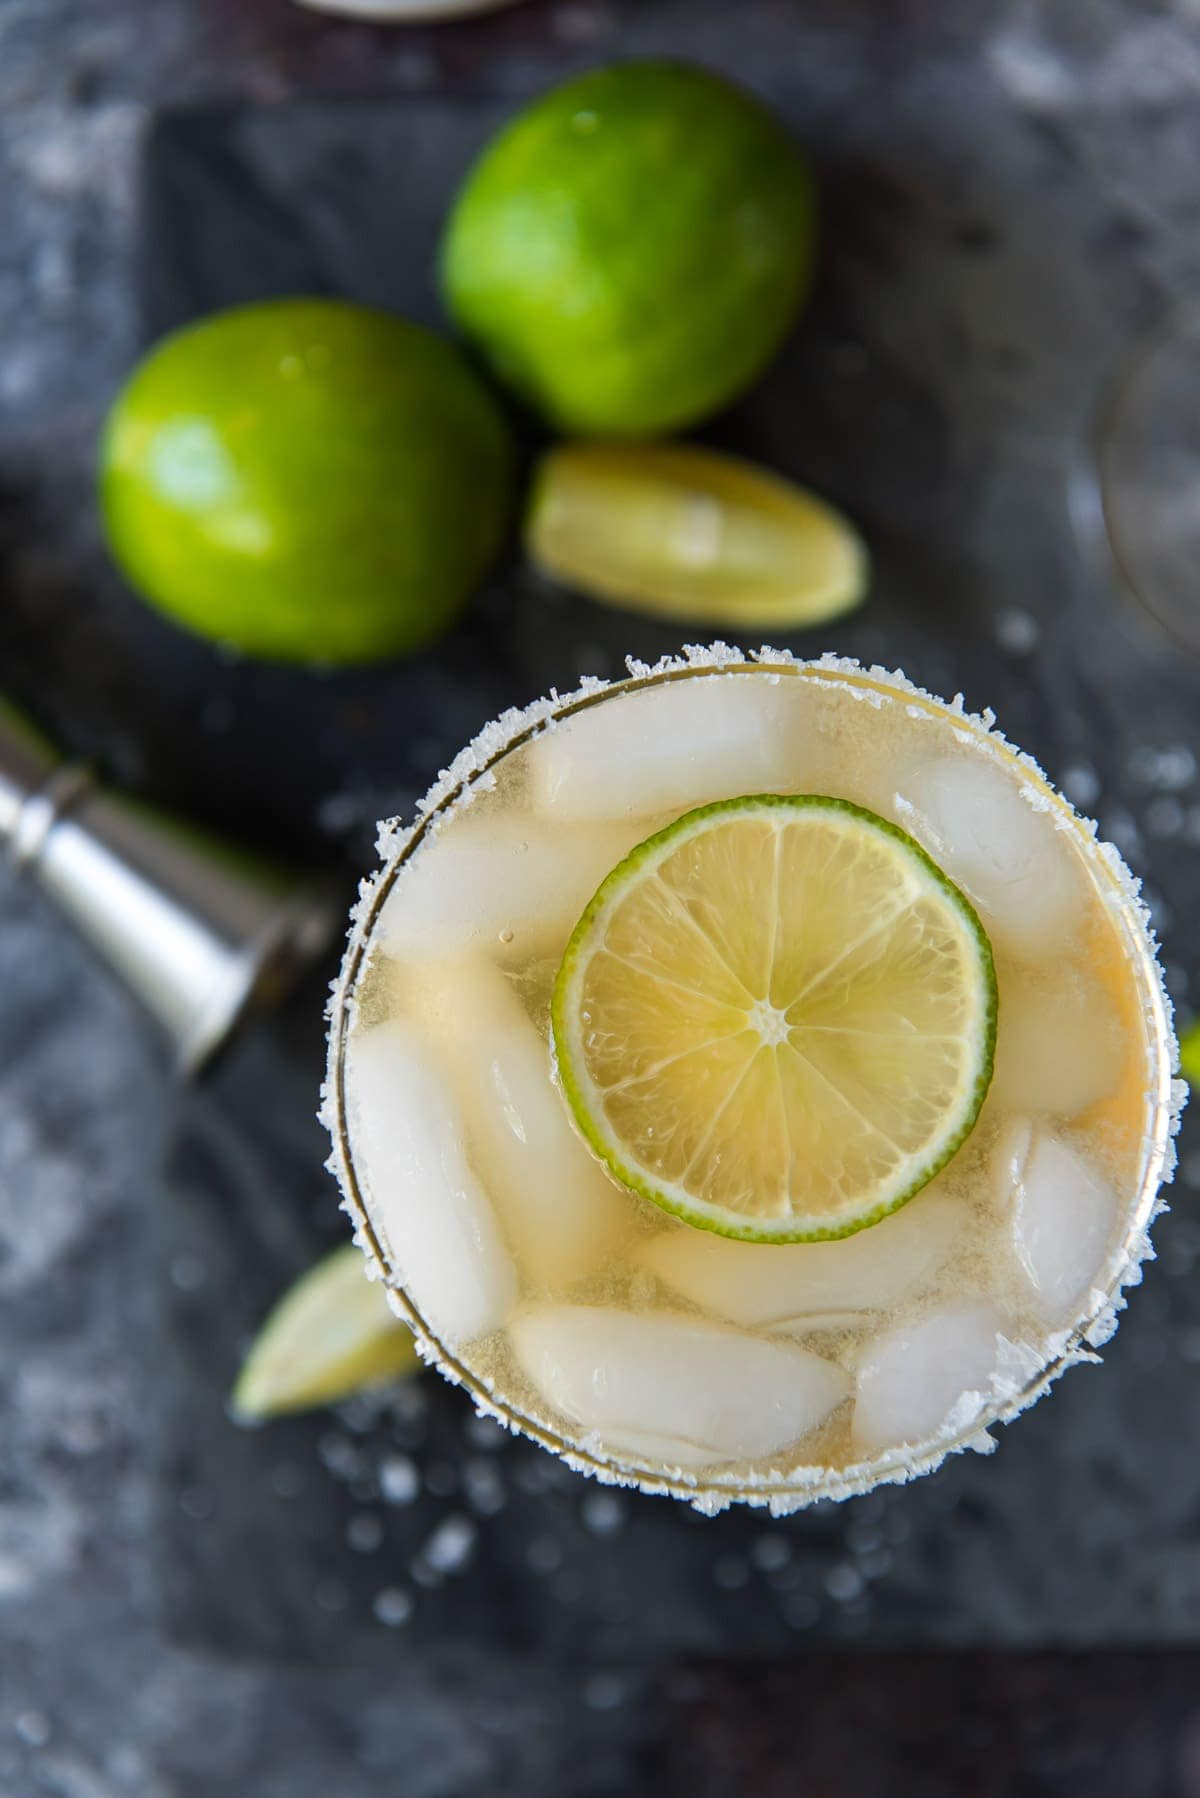 overhead shot of glass of margarita with jigger and limes below on a black background